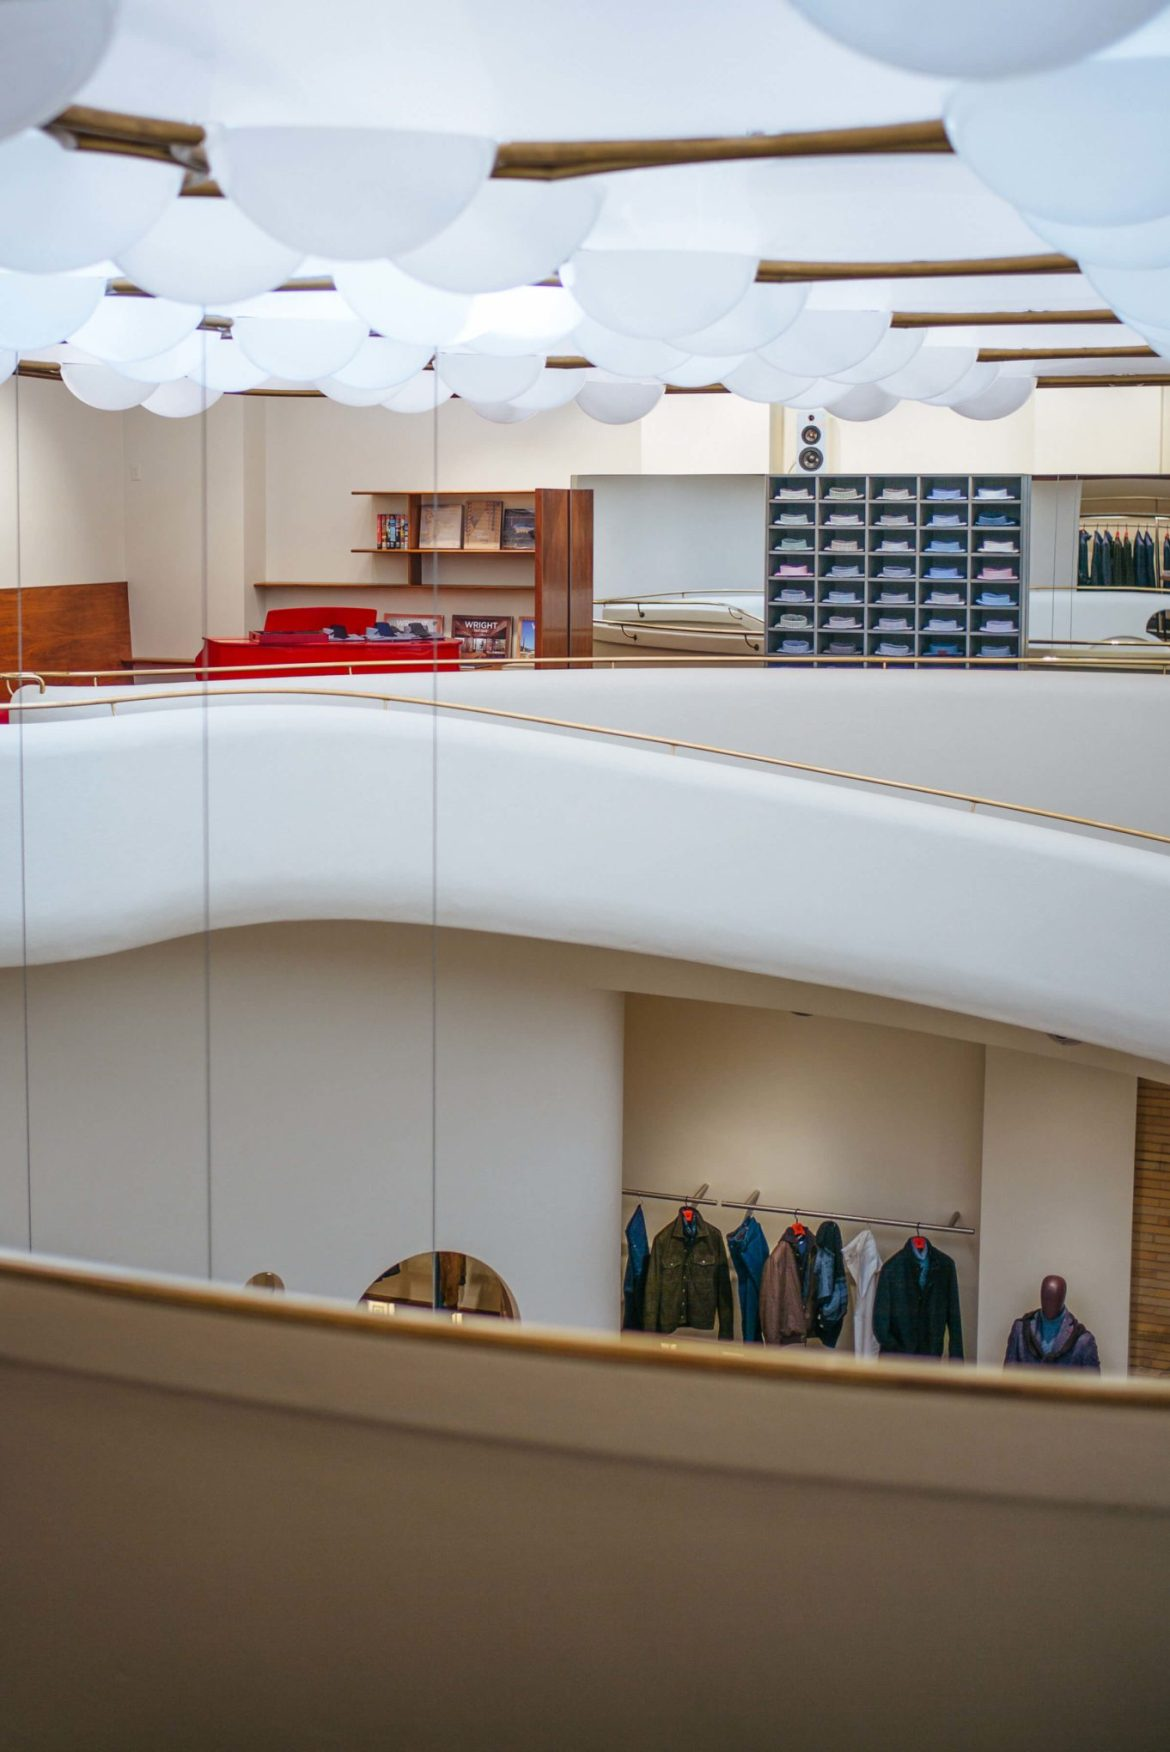 Admiring the Isaia San Francisco Store, Neapolitan Isaia suits in the historic VC Morris Frank Lloyd Wright San Francisco, The Taste Edit